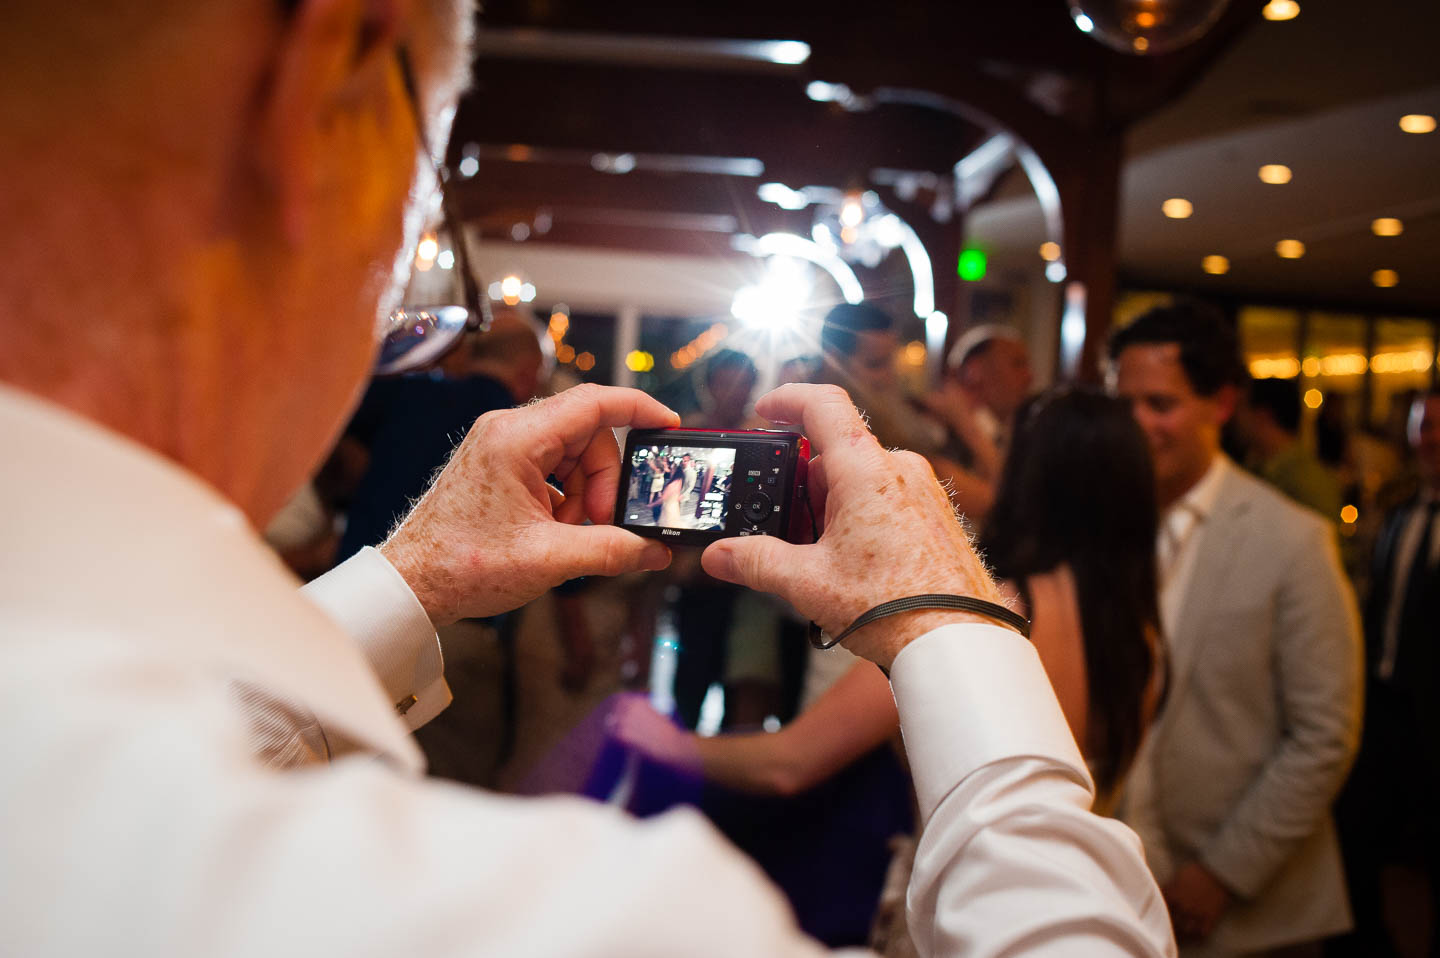 Wedding photograph taken over the shoulder of a guest with a point and shoot camera